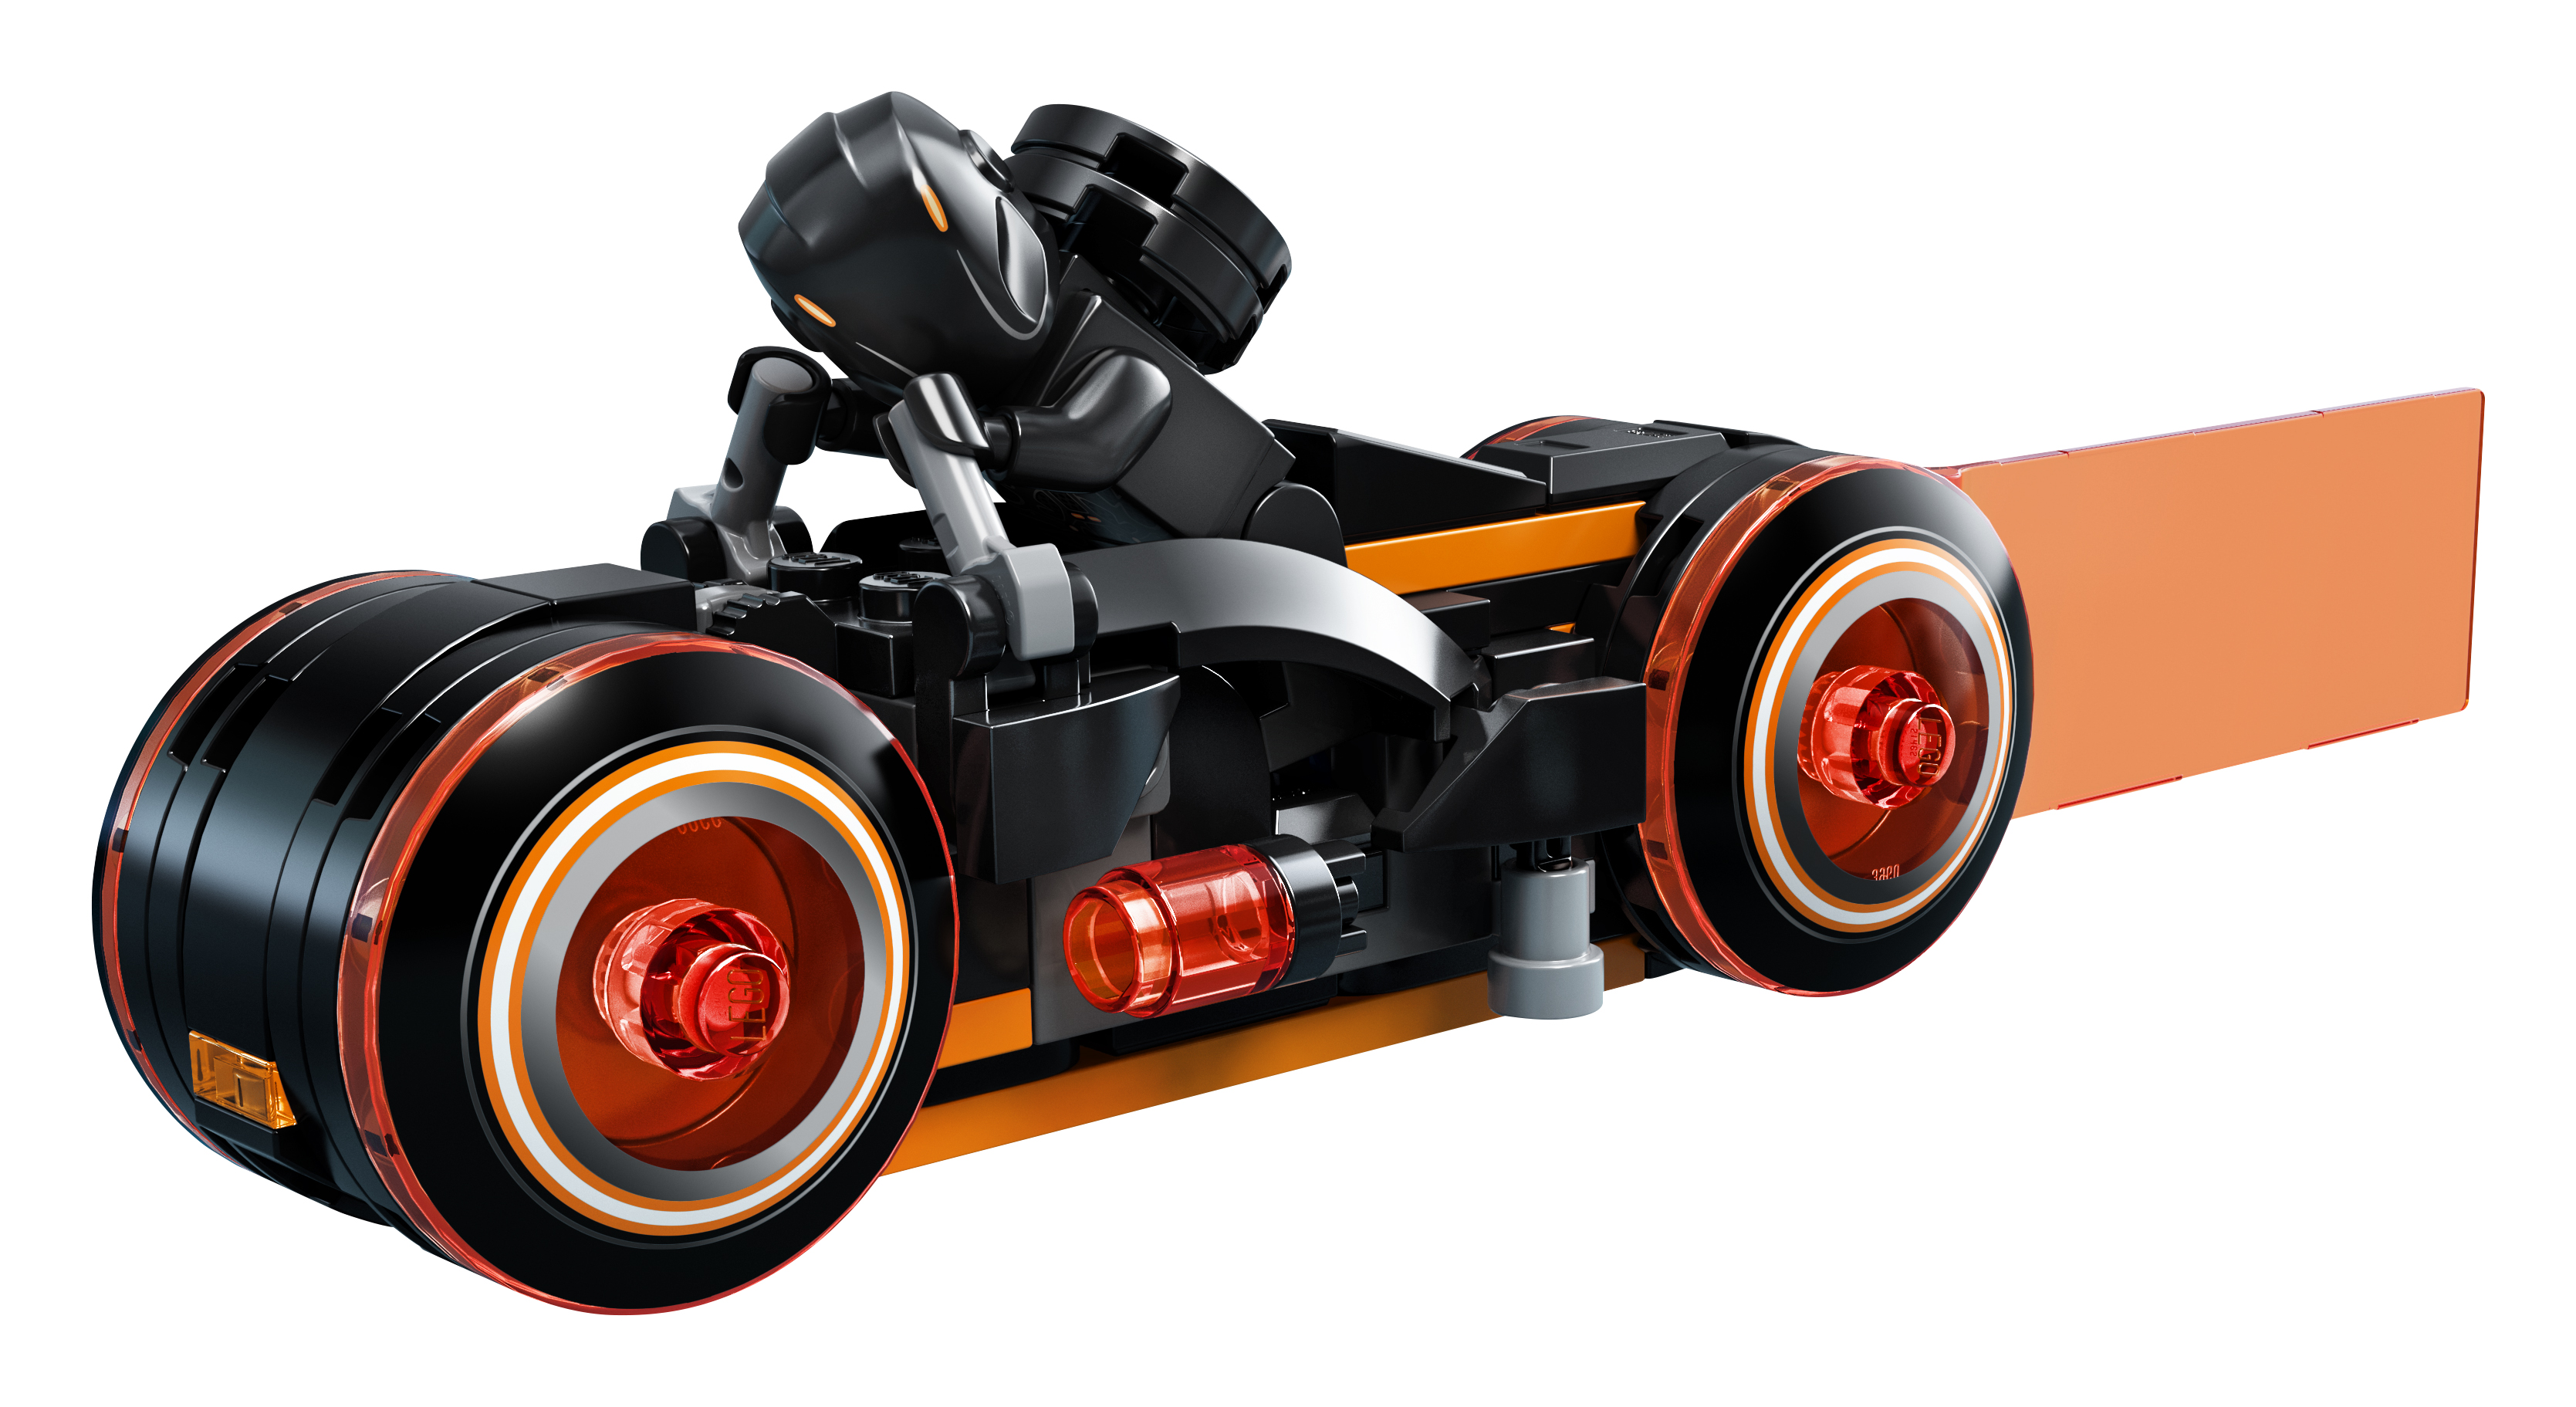 Lego 21314 Tron Legacy Comes To Lego Ideas On 31 March